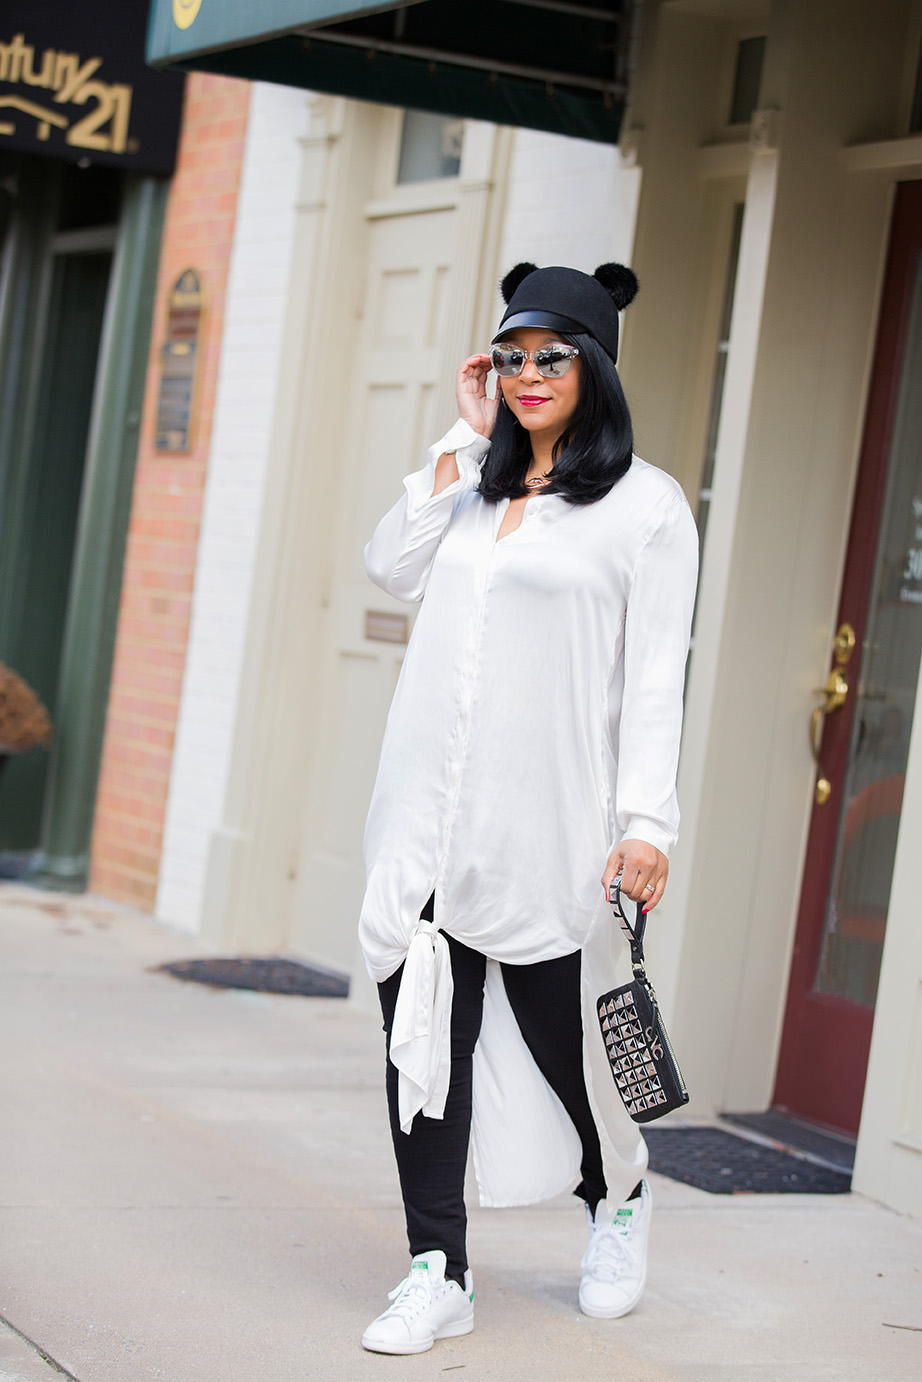 What's Haute Closet: Sometimes you just wanna kick up & kick off your heels: H&M Wool Hat with fur ball cat ears, H&M maxi shirt, adidas Stan Smith sneakers, Topshop Step Hem Jeans, Fishnet Socks, CNC by Costume National Studded Wristlet Clutch, gold leather moto jacket